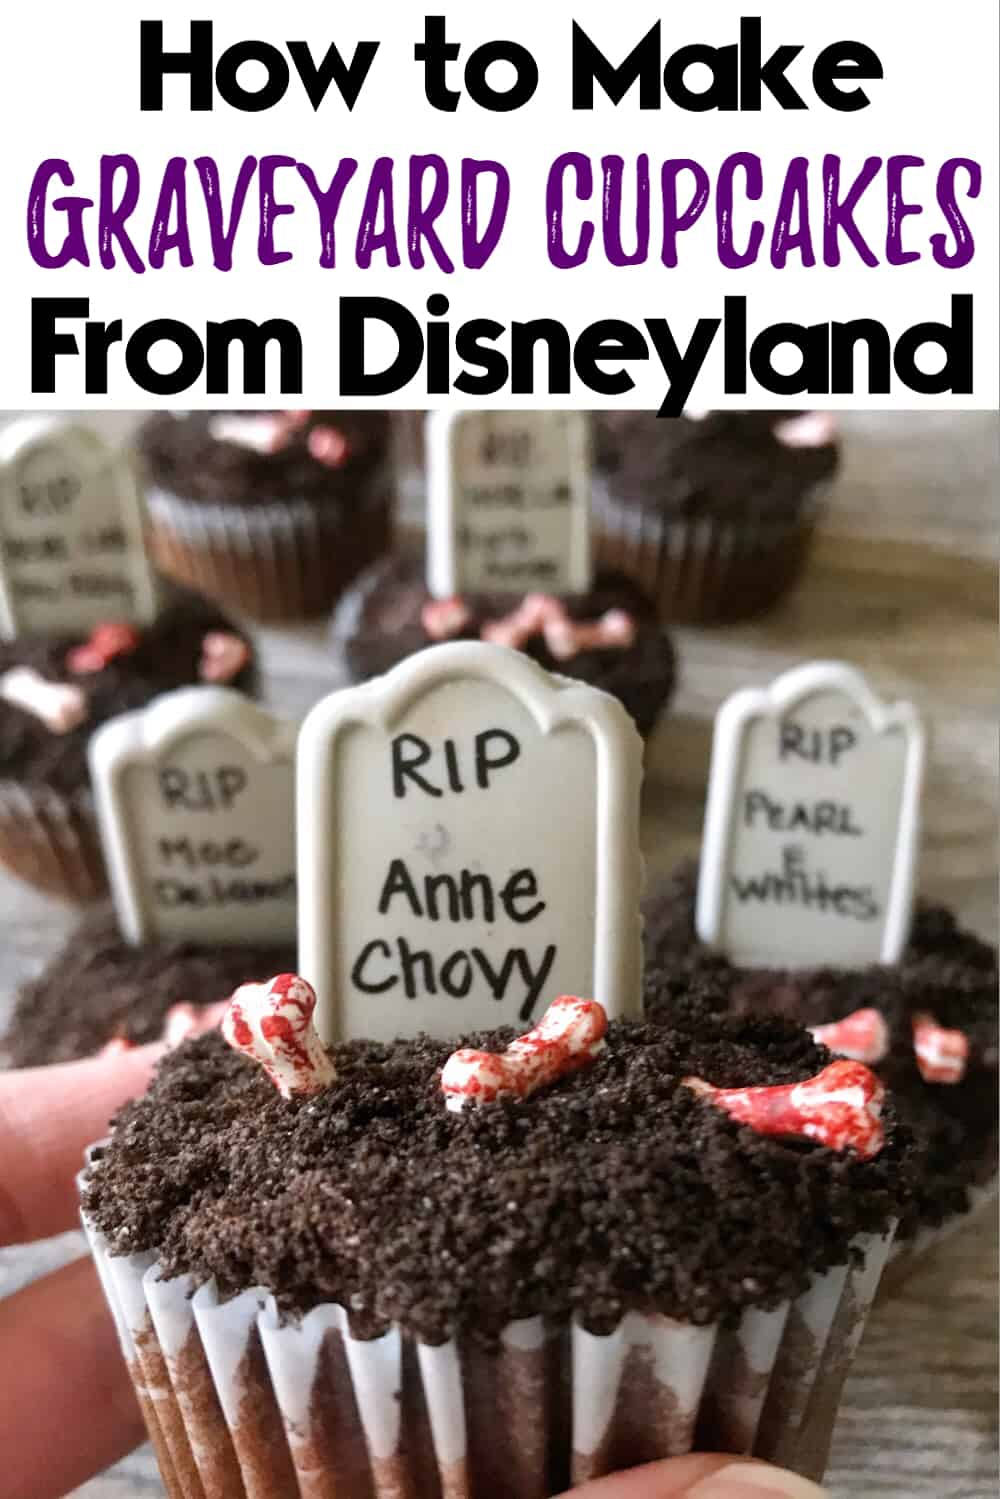 How to Make Graveyard Cupcakes from Disneyland